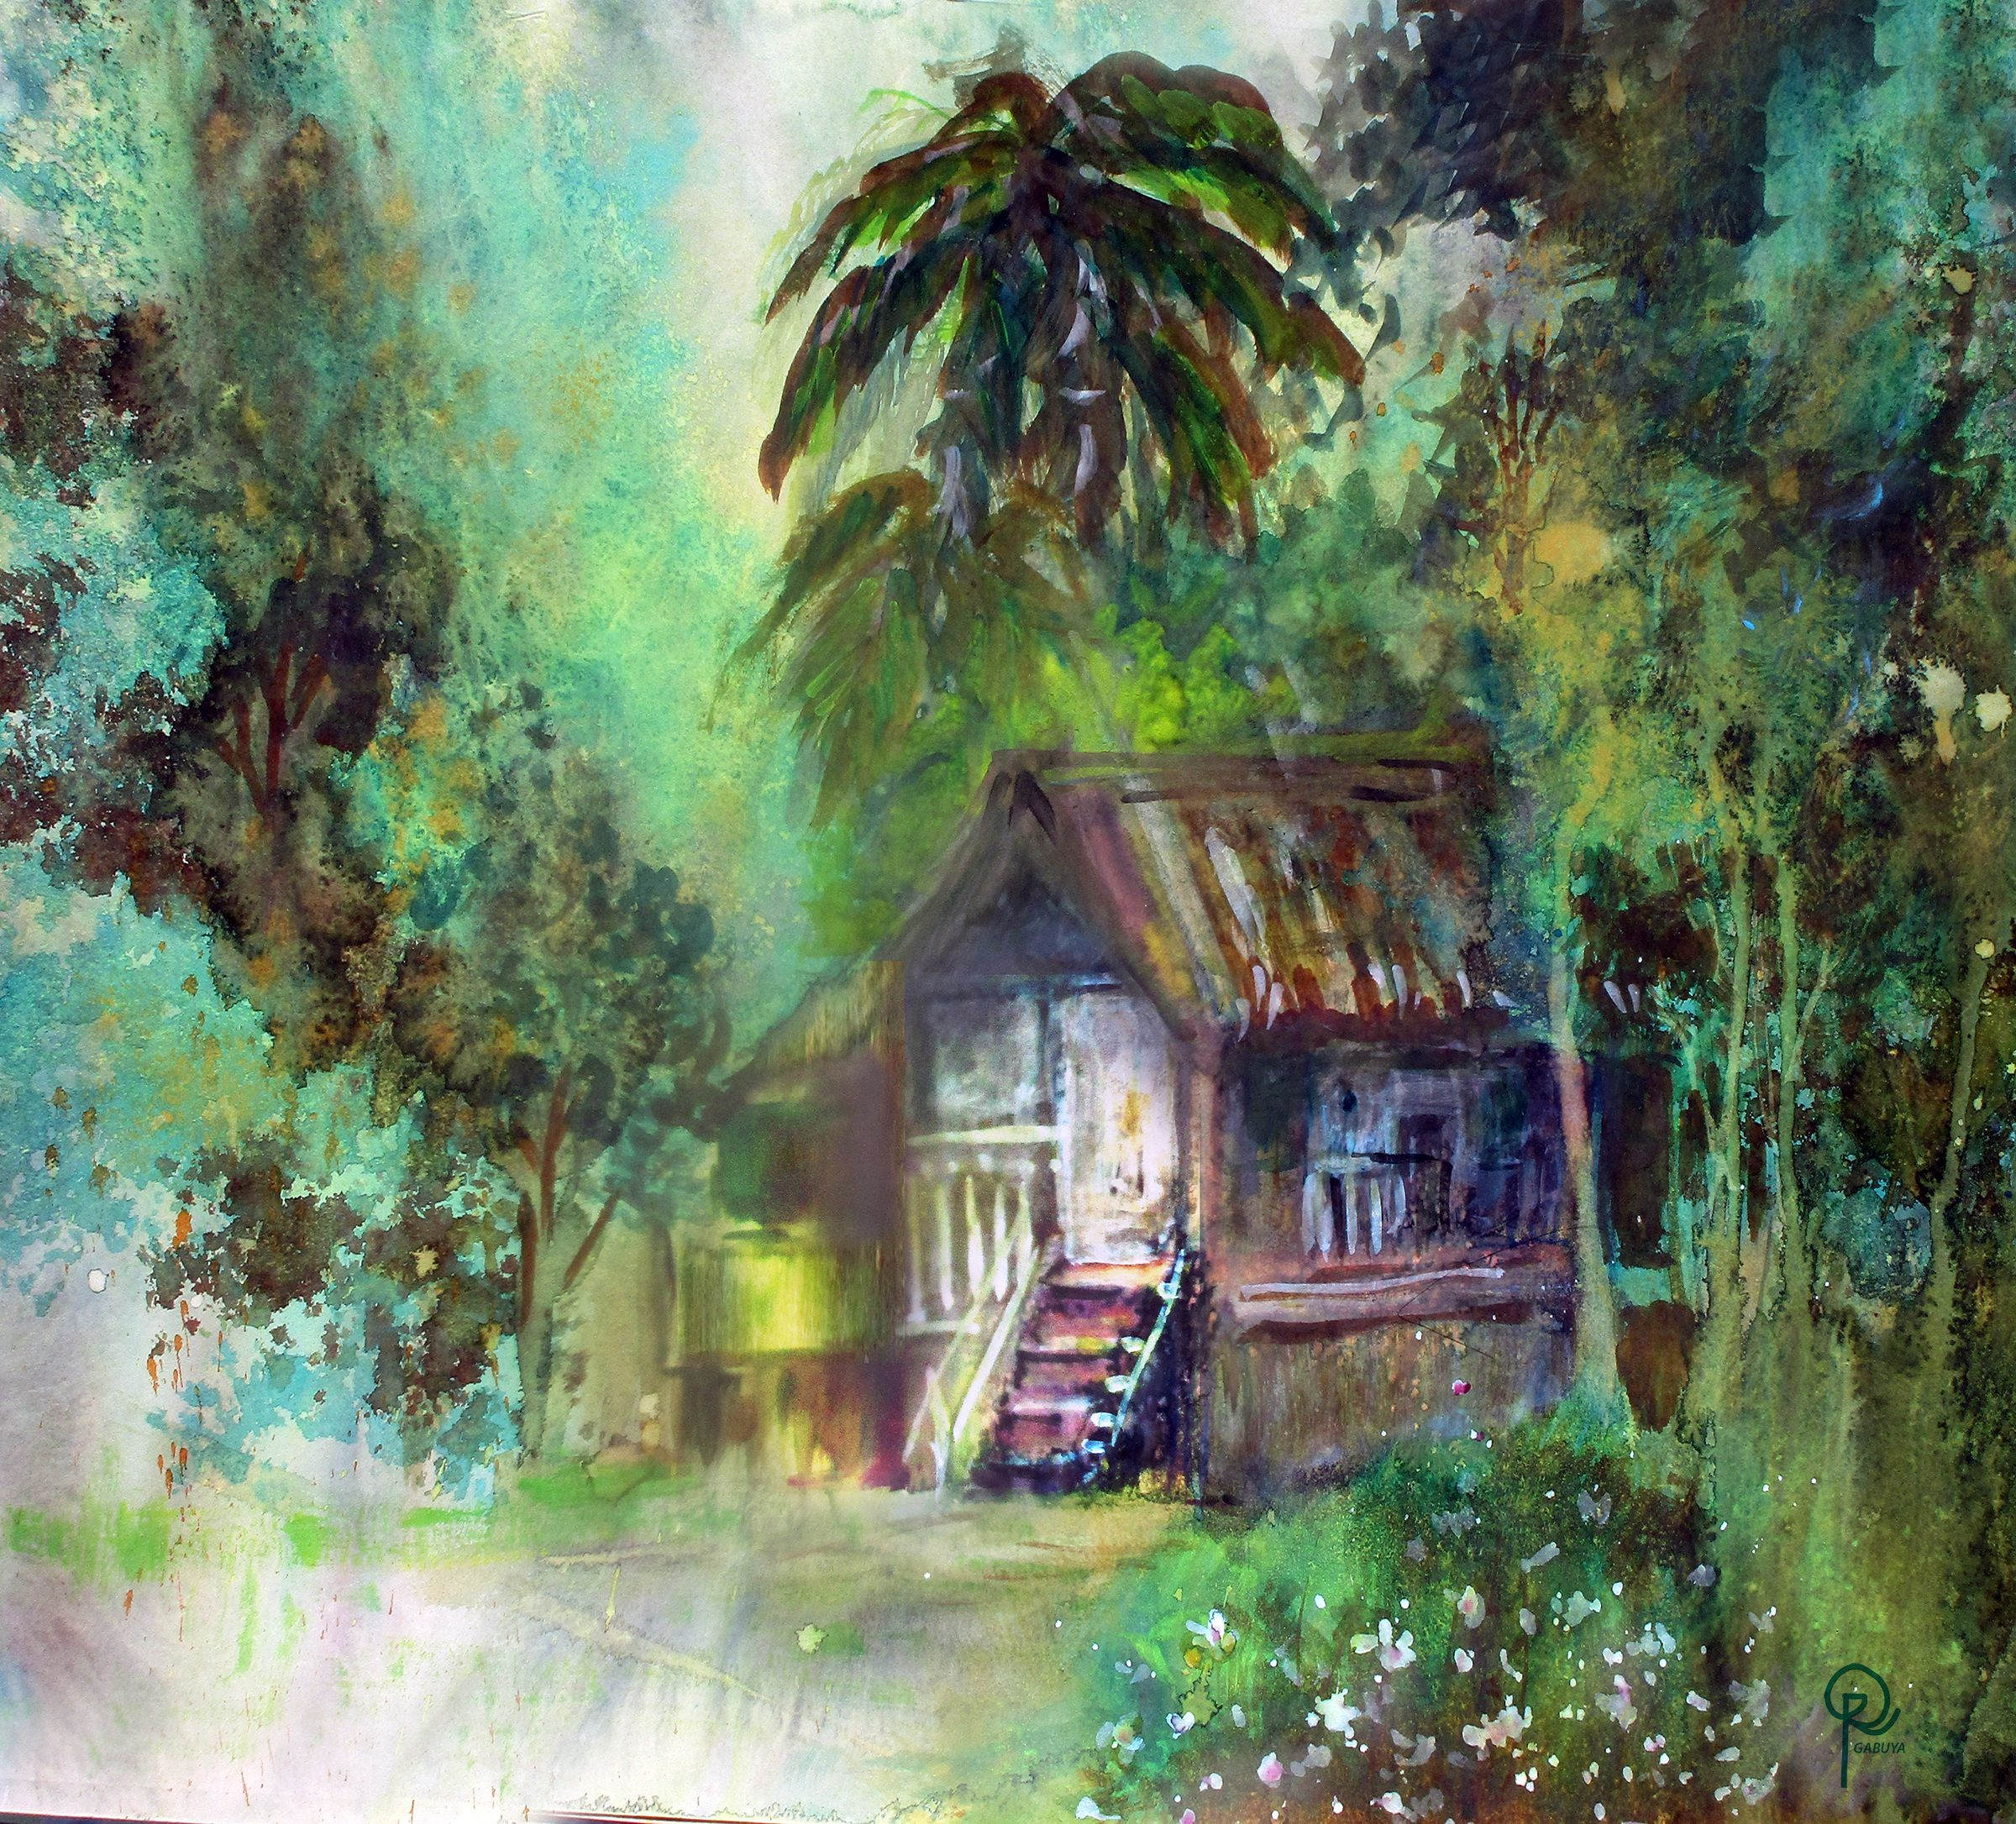 Racquel Gabuya S Art Nipa Hut Philippine Art Watercolor